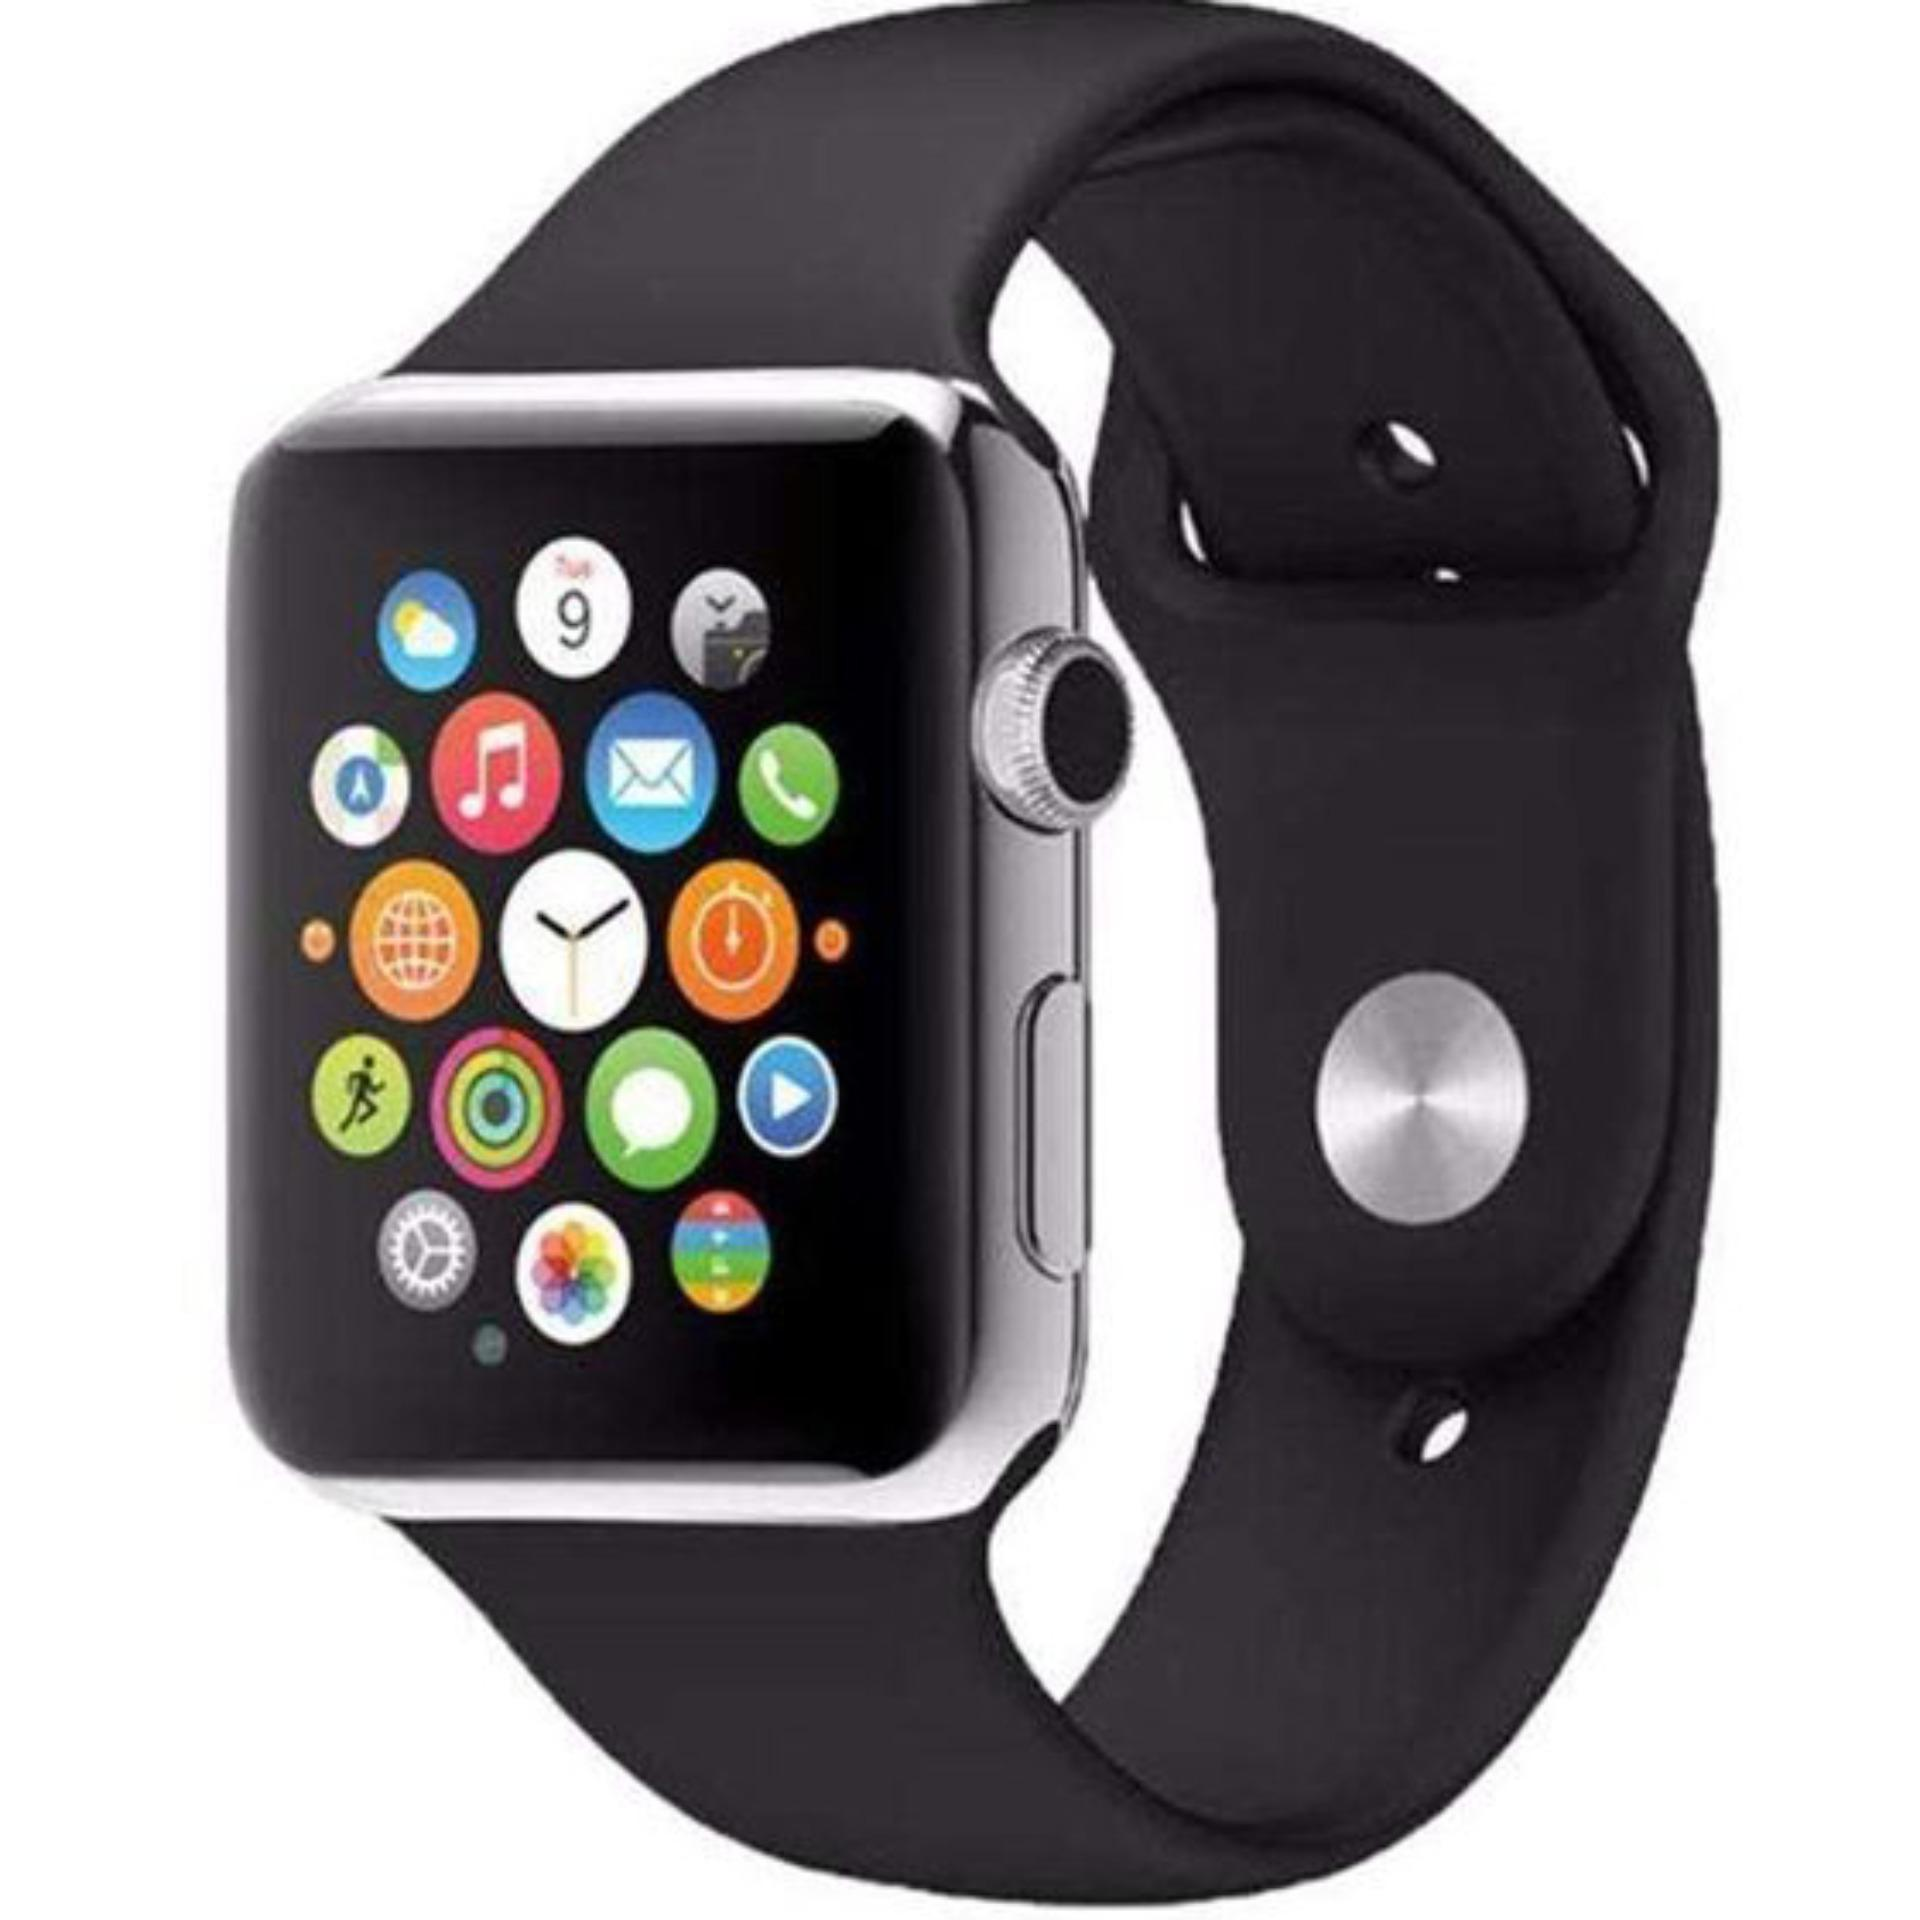 Bluetooth Smart Watch Touch Screen Mobile Phone - Bluetooth Supported and  Memory Card supported Smart Watch plus Phone for Android and iPhone